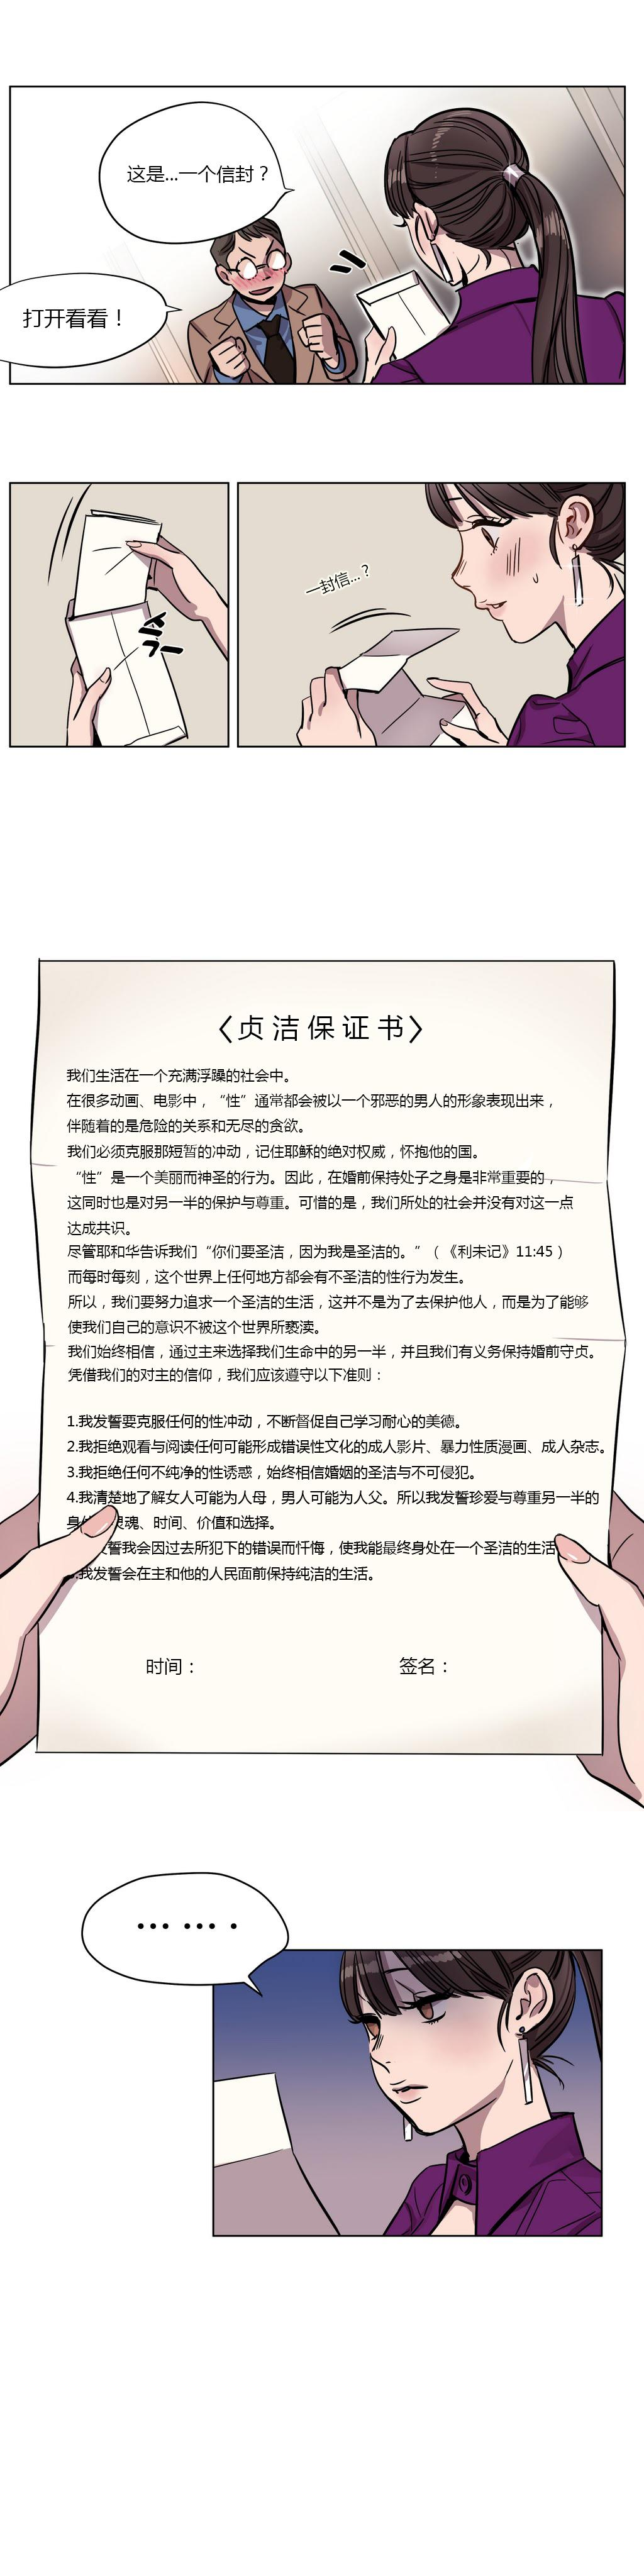 Atonement Camp Ch.0-34 43